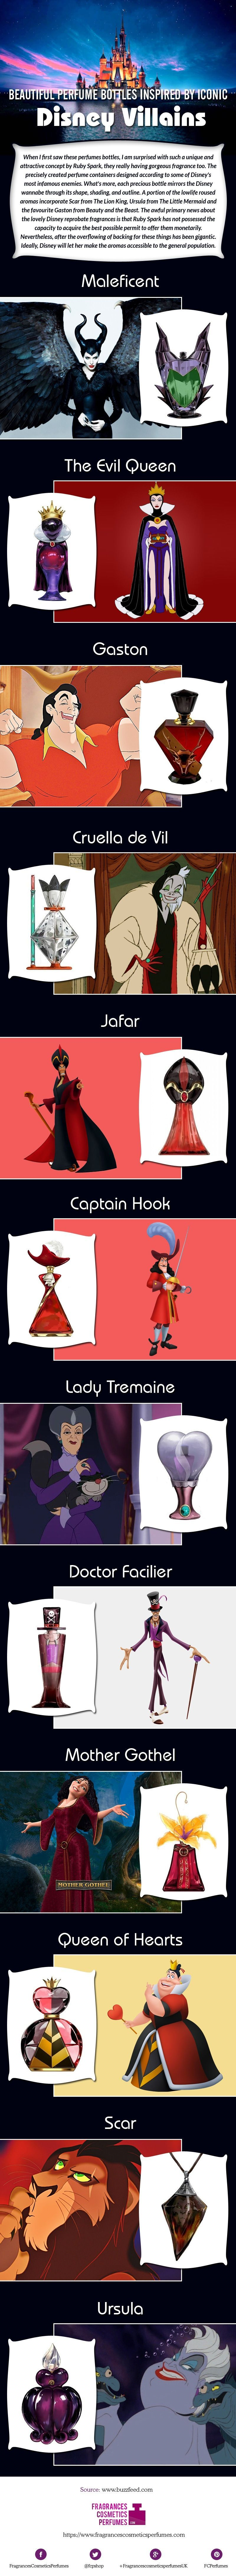 Beautiful Perfume Bottles Inspired by Iconic Disney Villains #Infographic